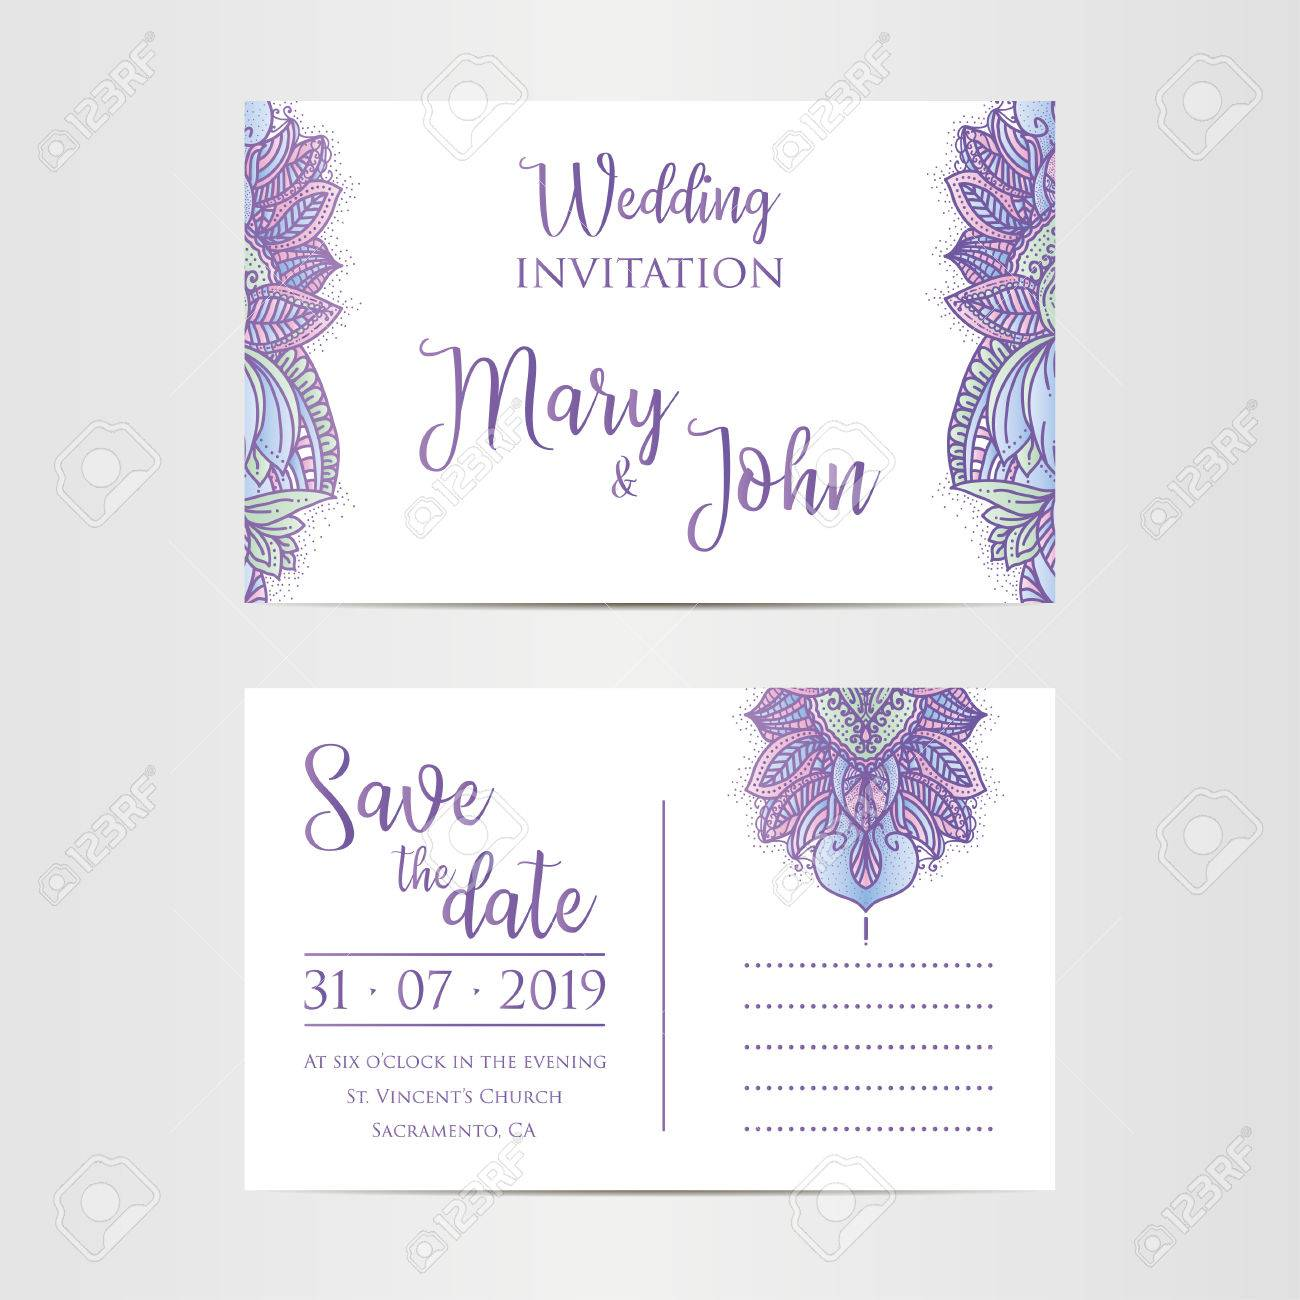 vintage template design layout for a wedding invitation thank